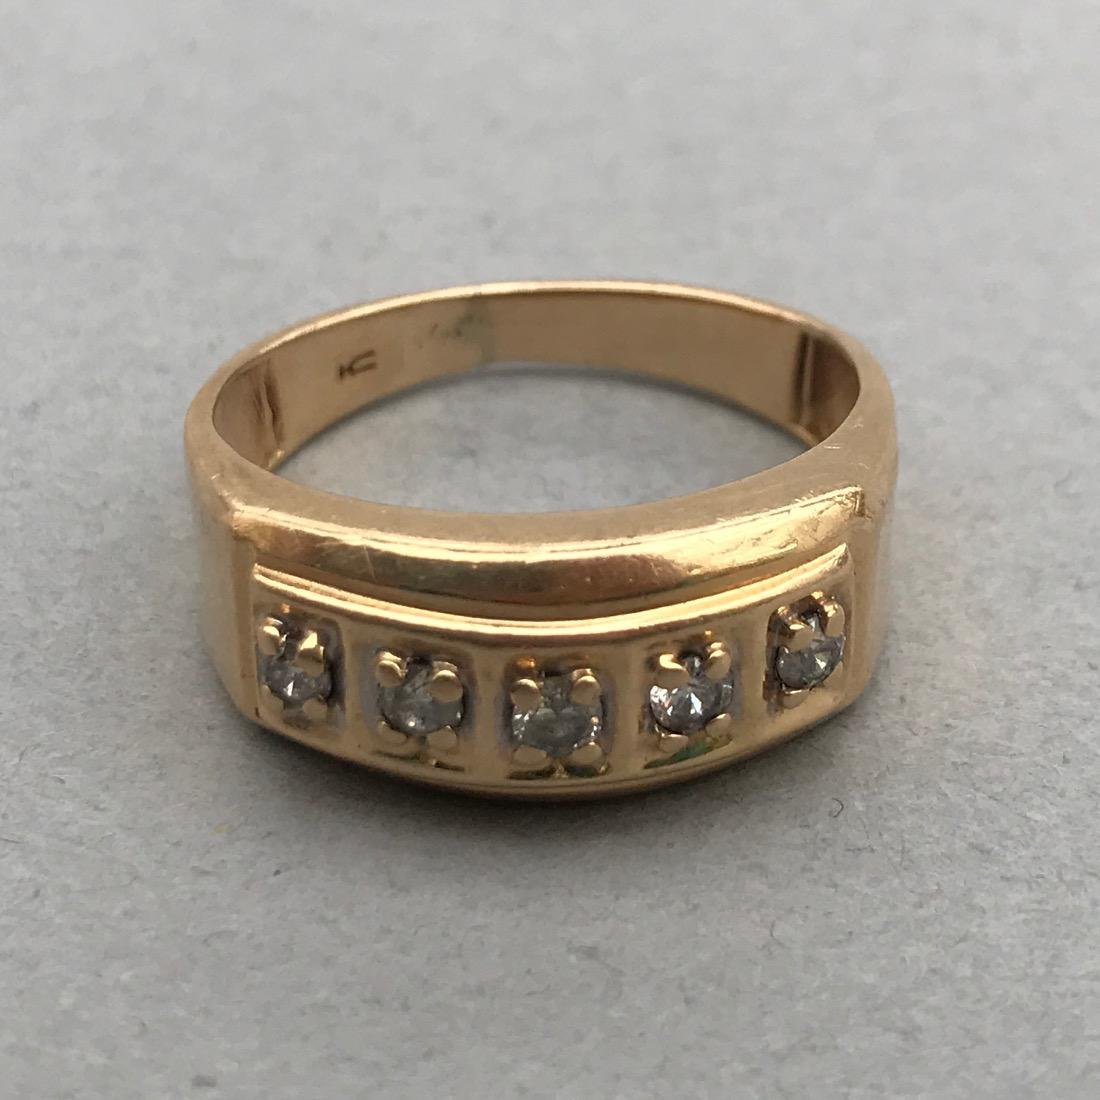 14K Gold Ring with 5 Diamonds - 2